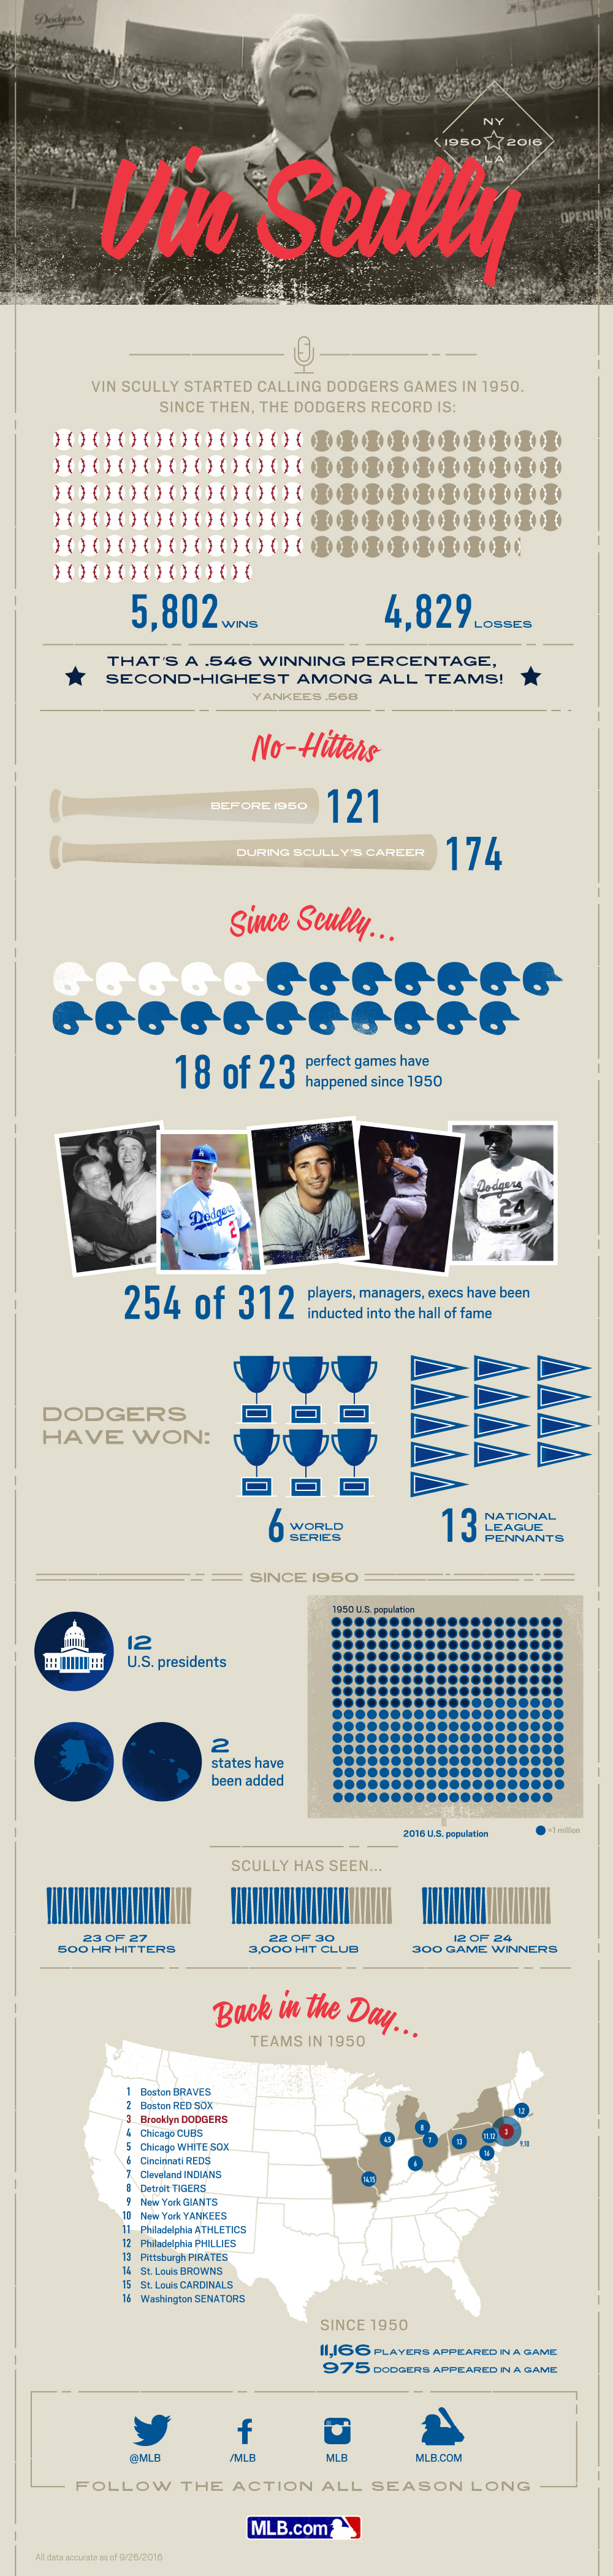 Vin Scully Career Stats